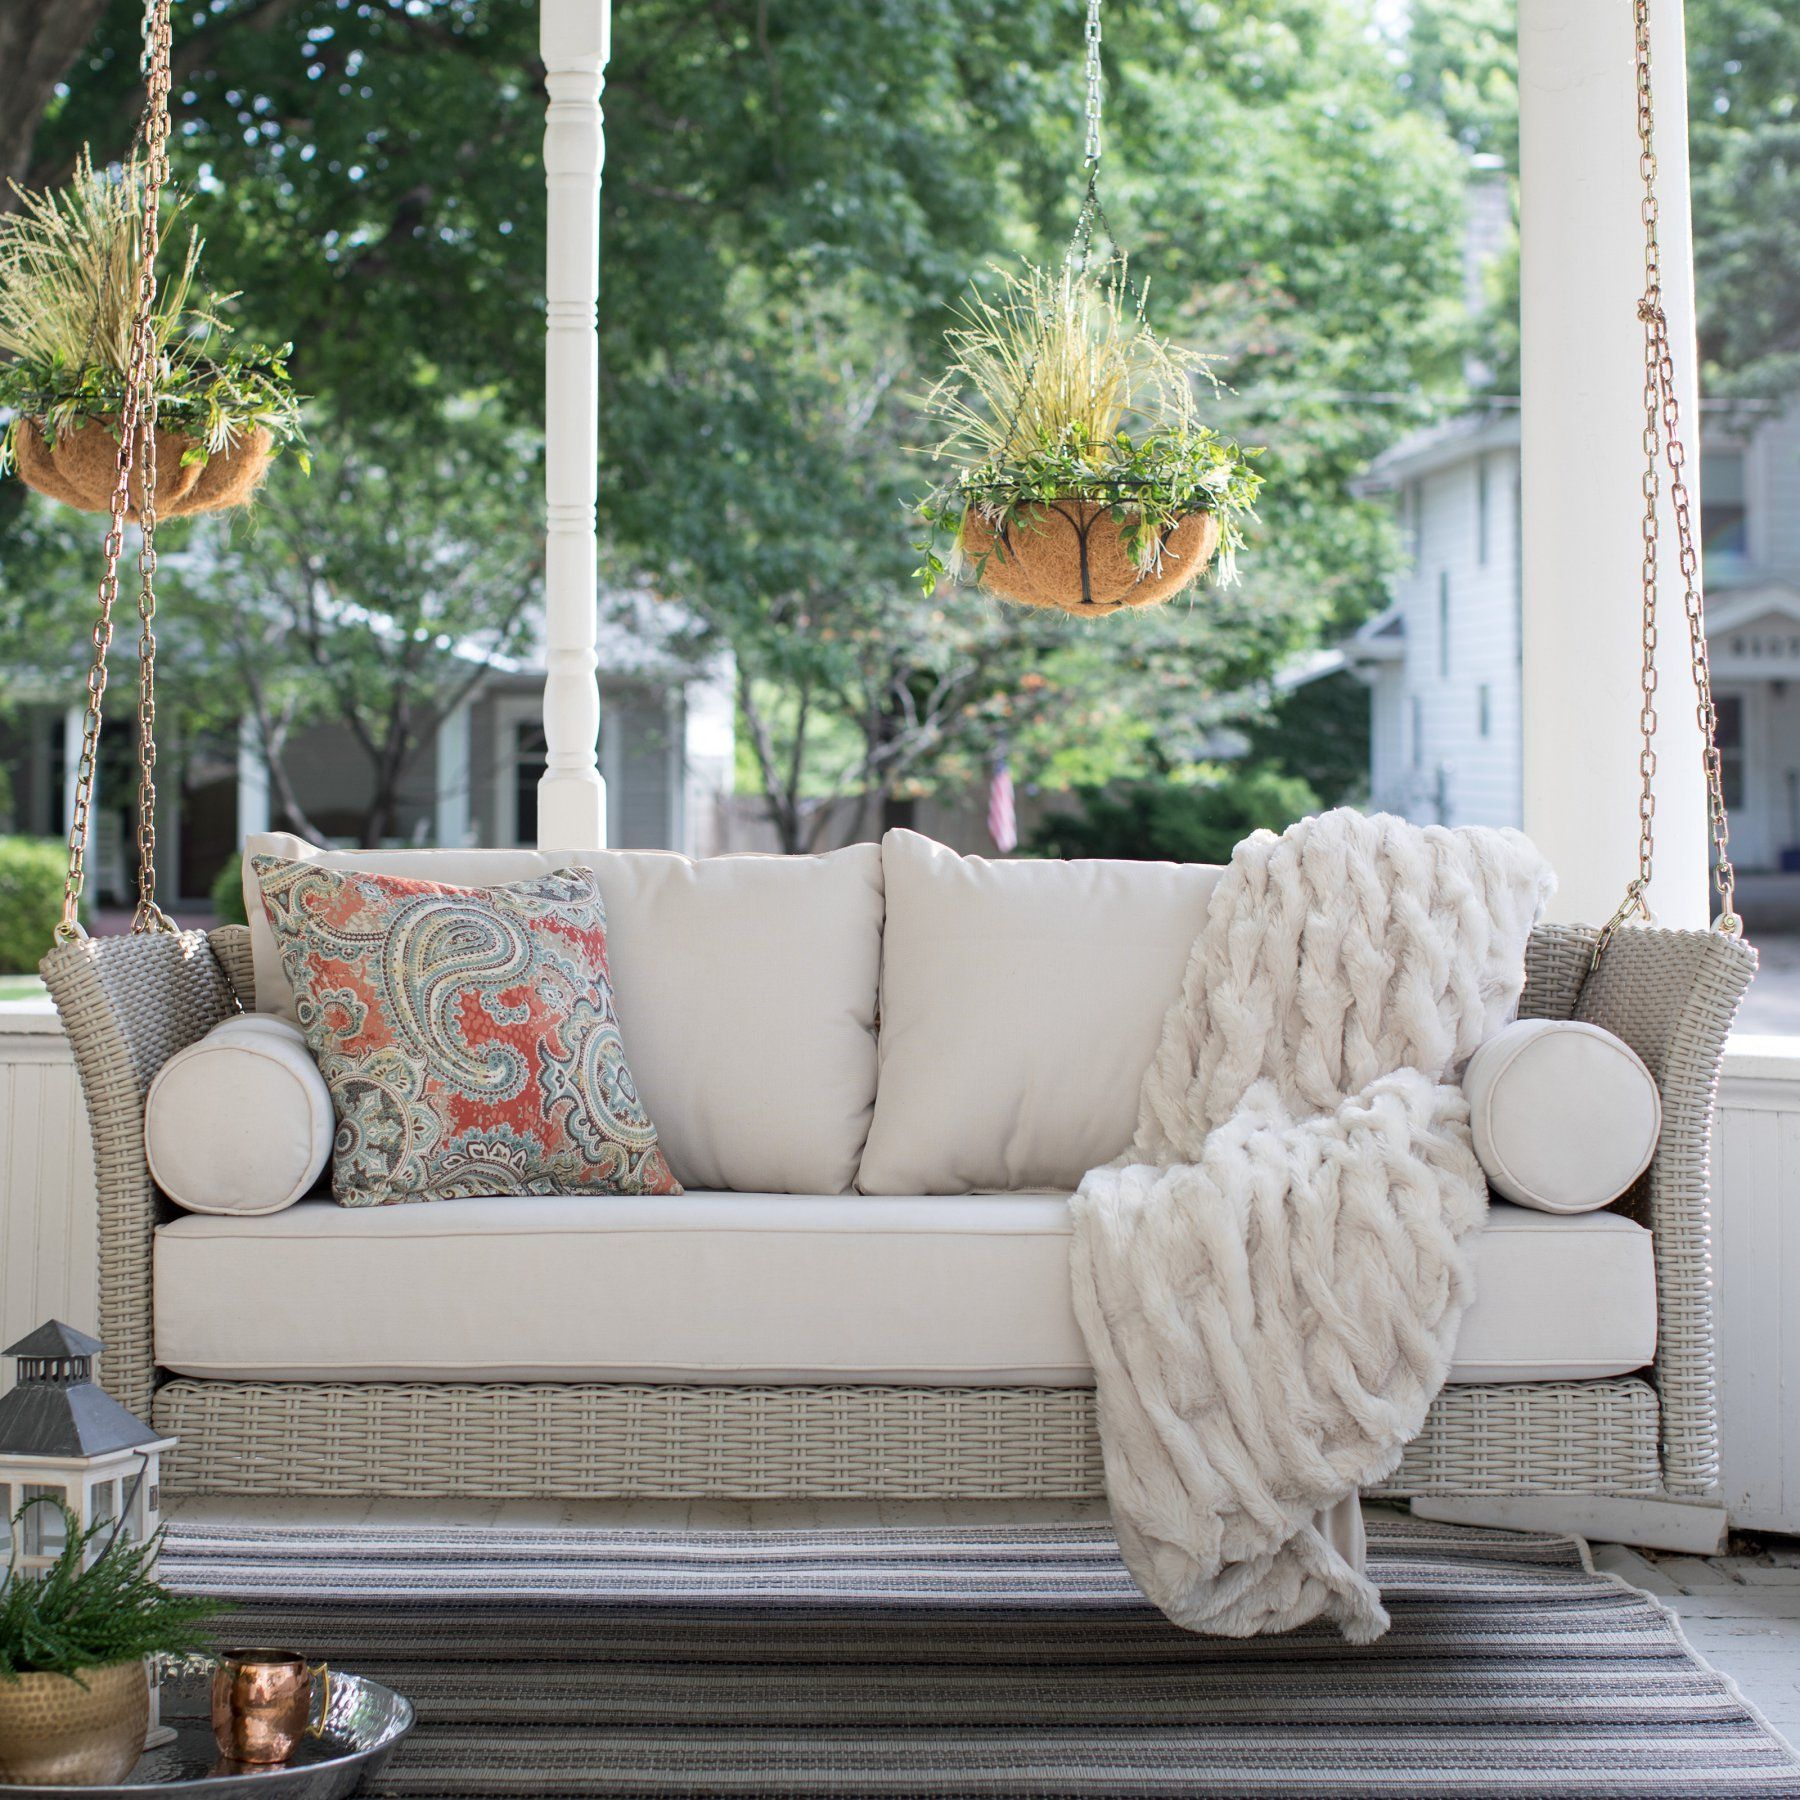 Belham Living Bellevue Deep Seating All Weather Wicker Porch Swing Bed With Cushion Wicker Porch Swing Porch Swing Bed Porch Swing